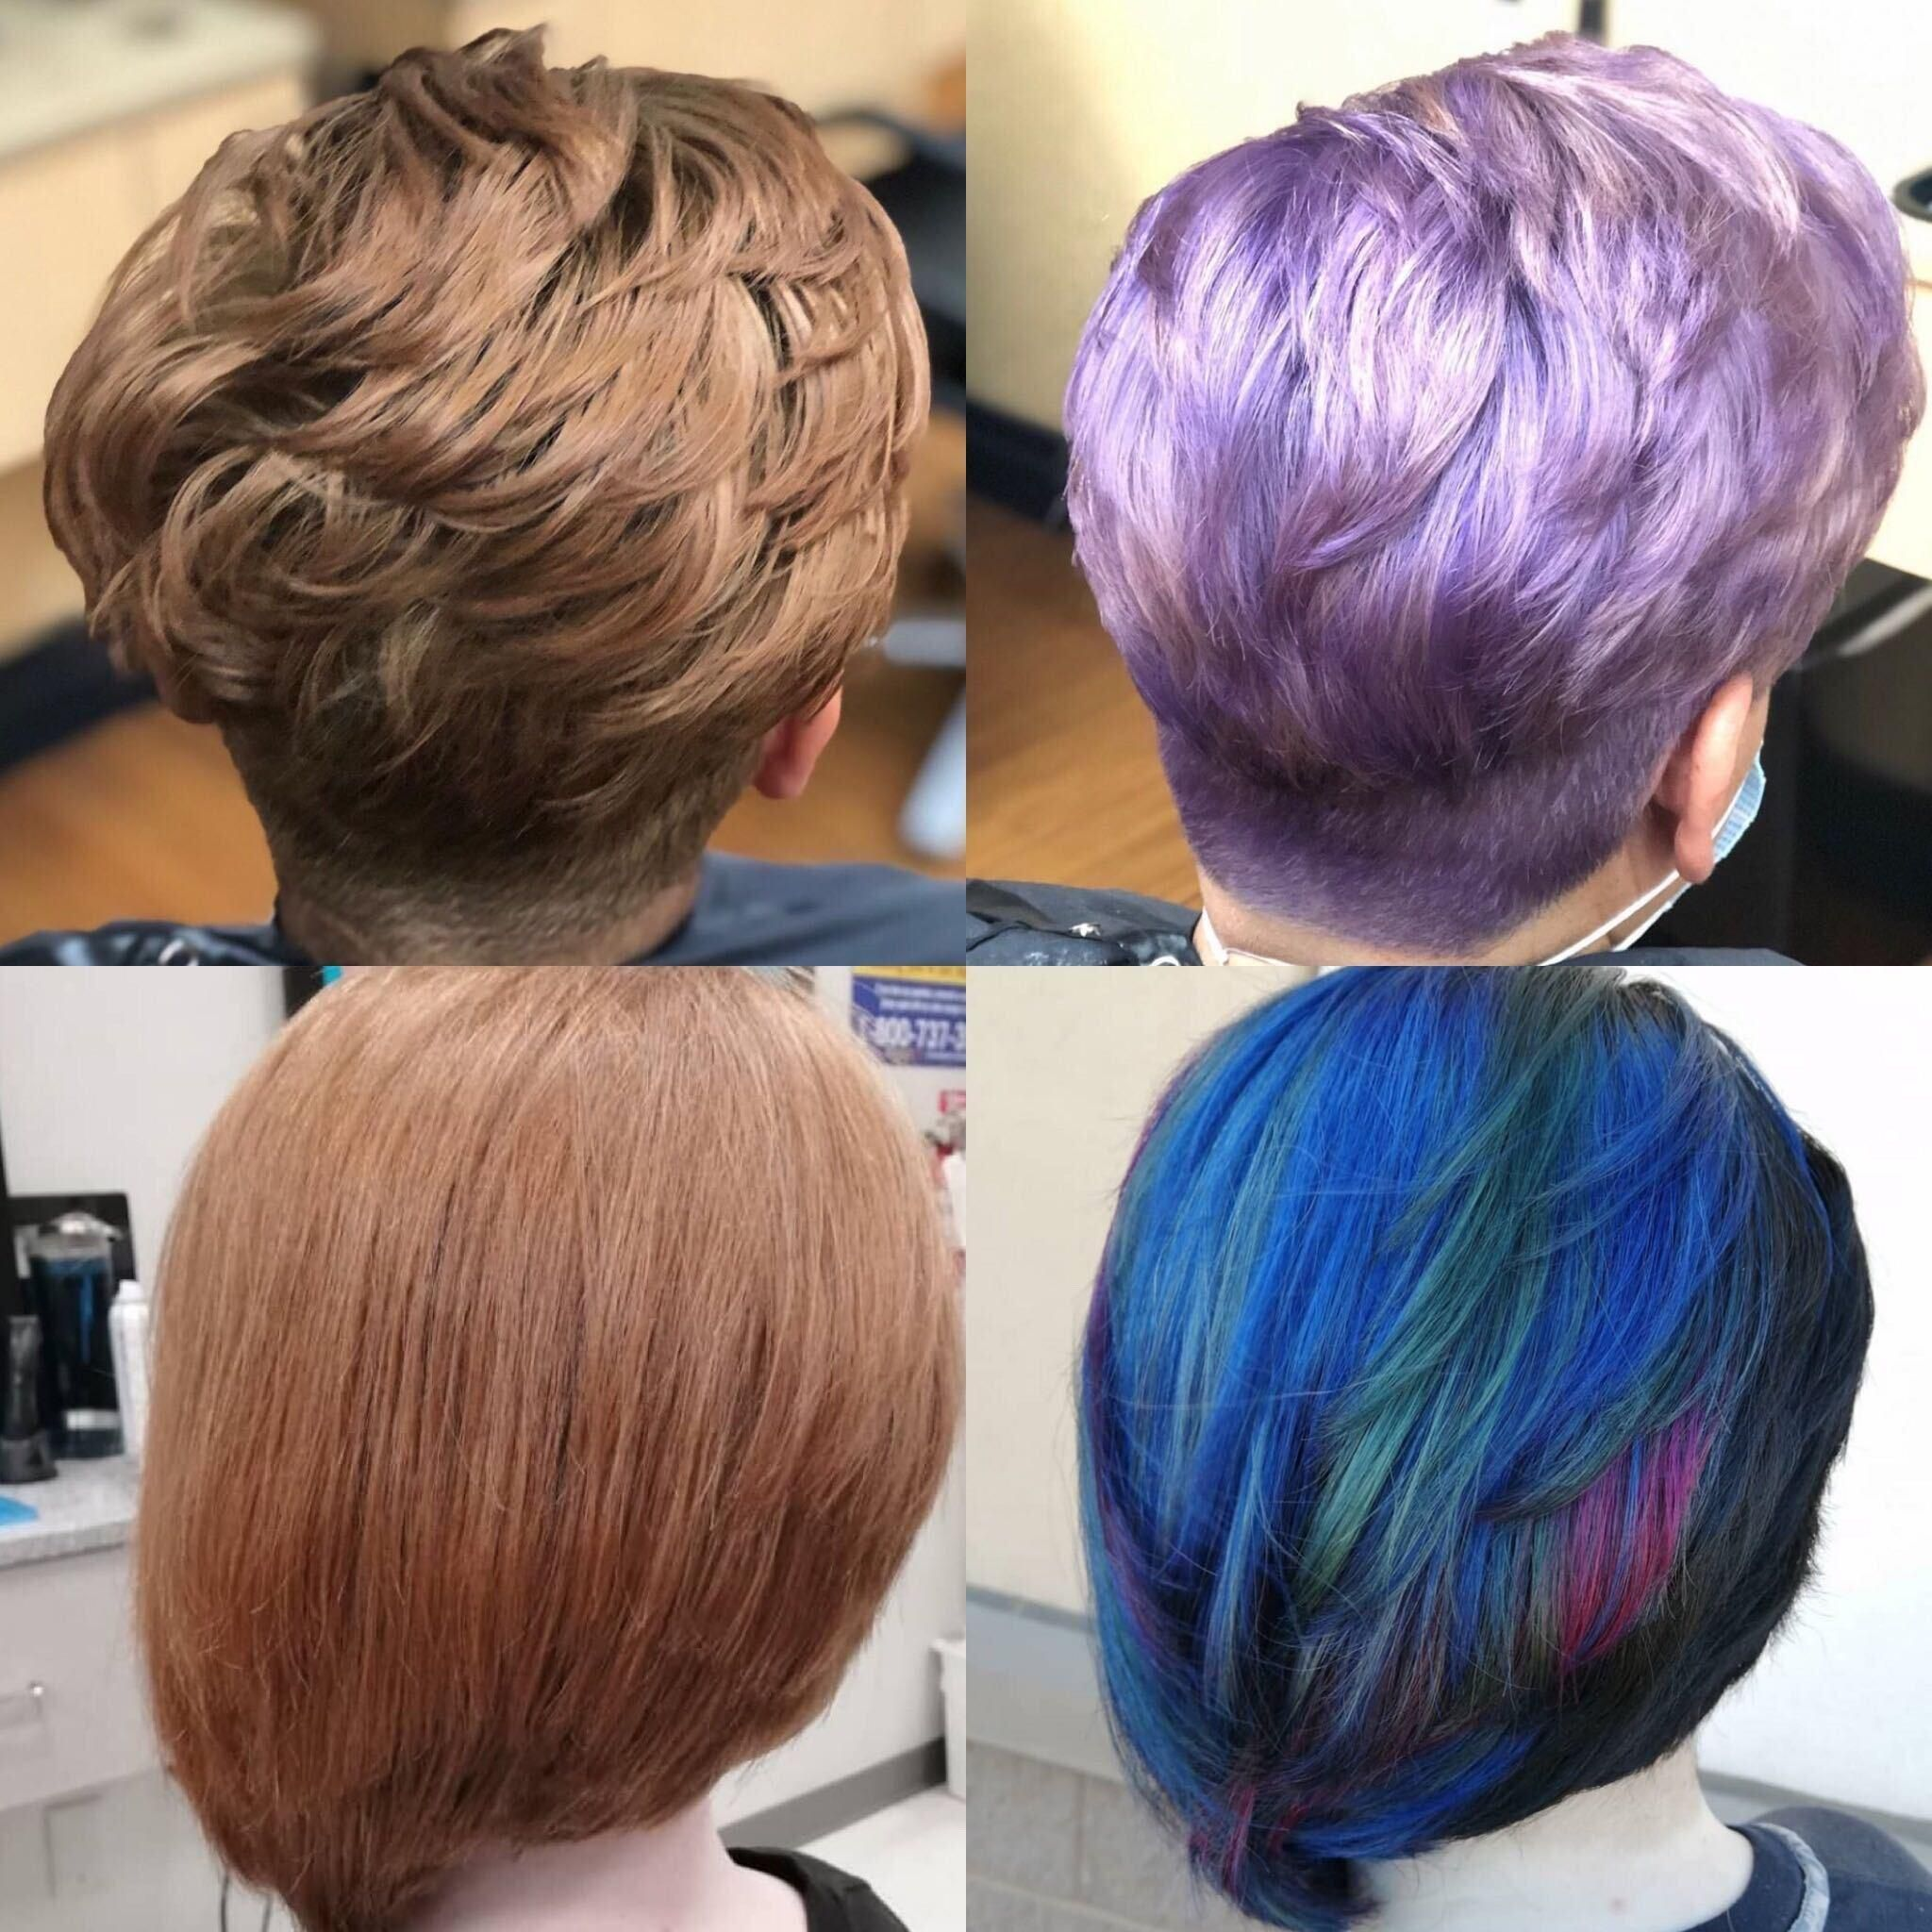 Mysmartstyle Share Your Beautiful Hair Smartstyle Hair Salons Beautiful Hair Galaxy Hair Hair Photo